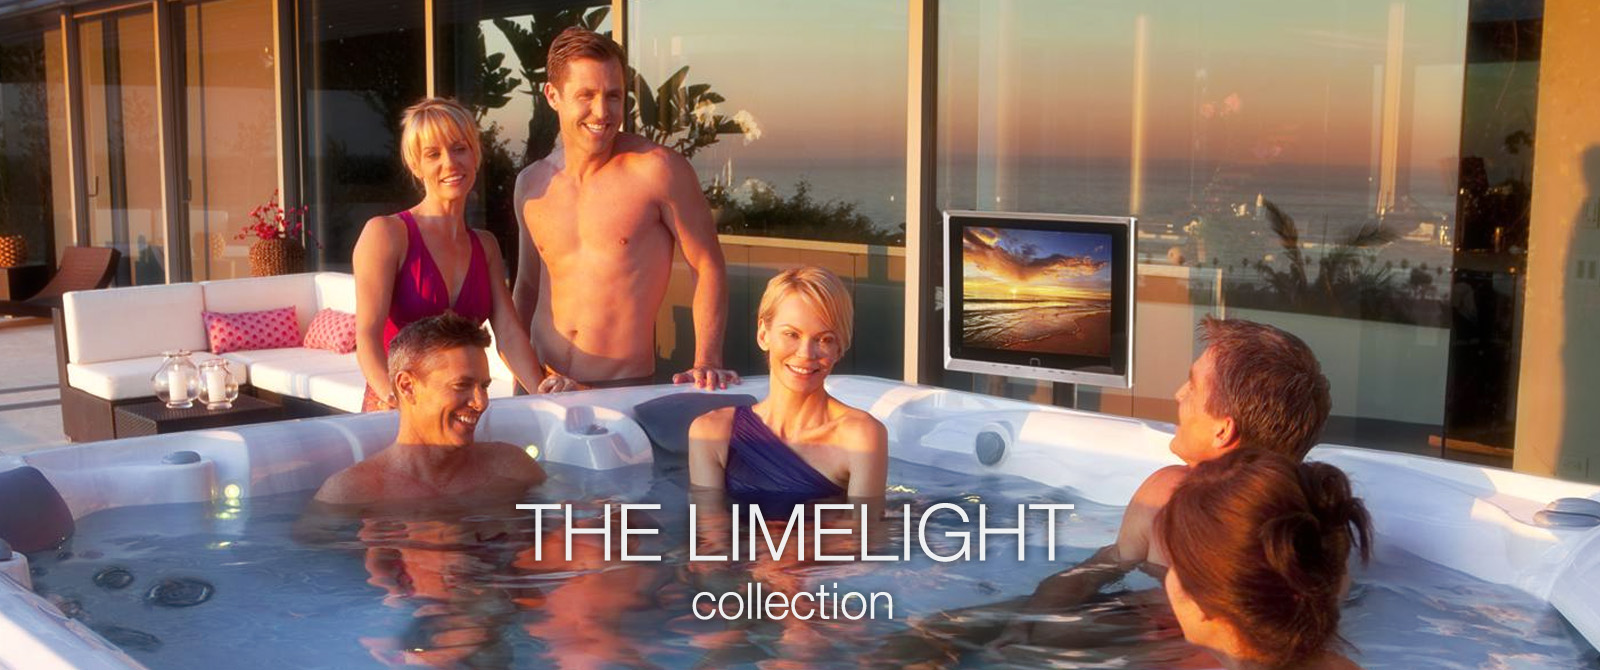 the limelight collection hotspring spa lanzarote